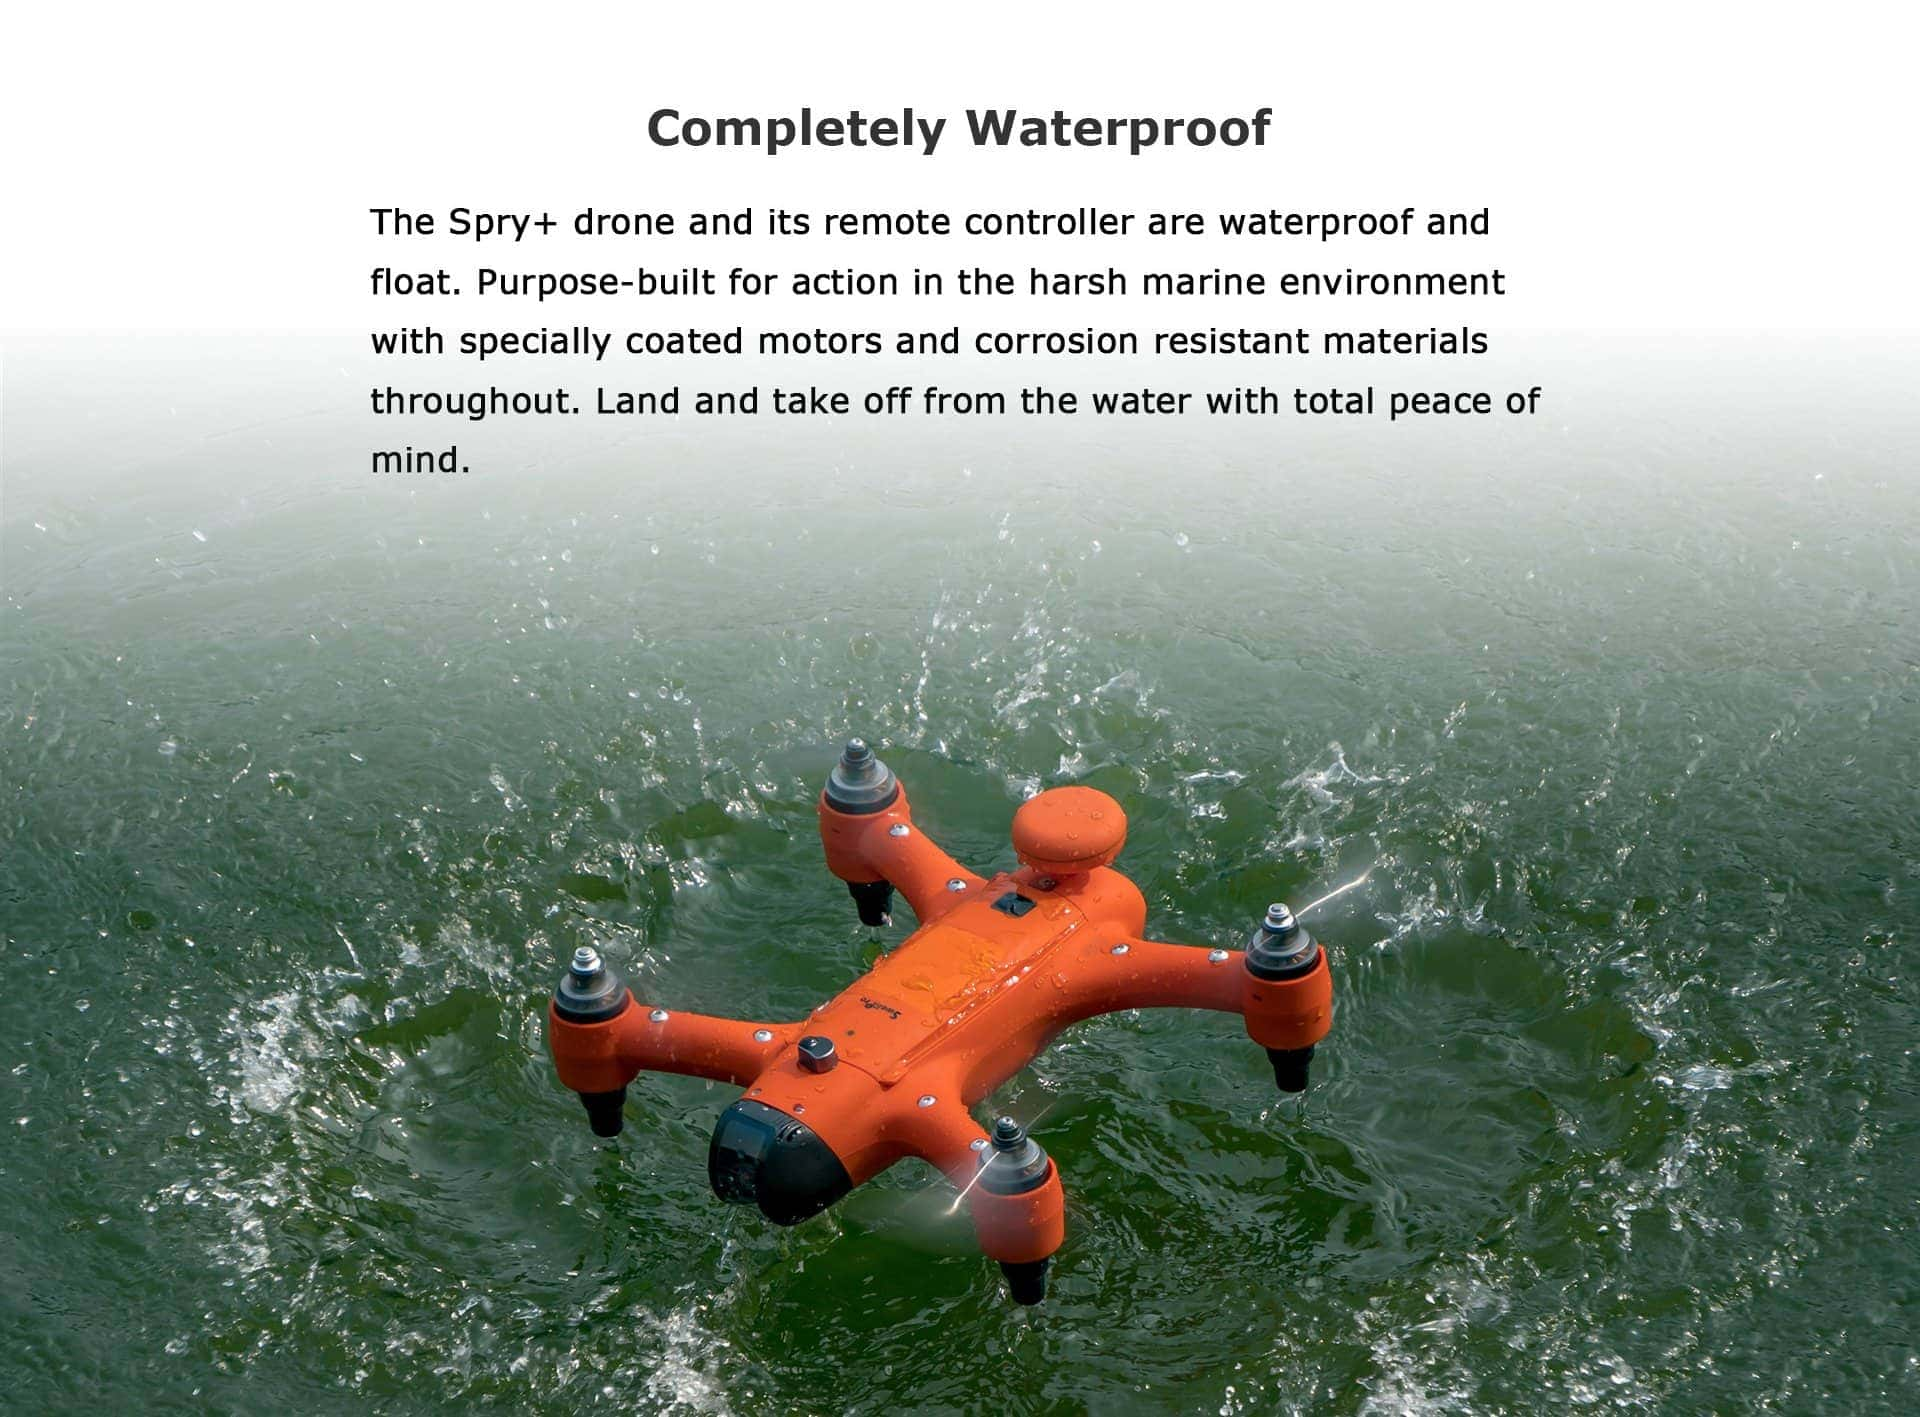 SwellPro - Spry+ a Completely Waterproof Drone